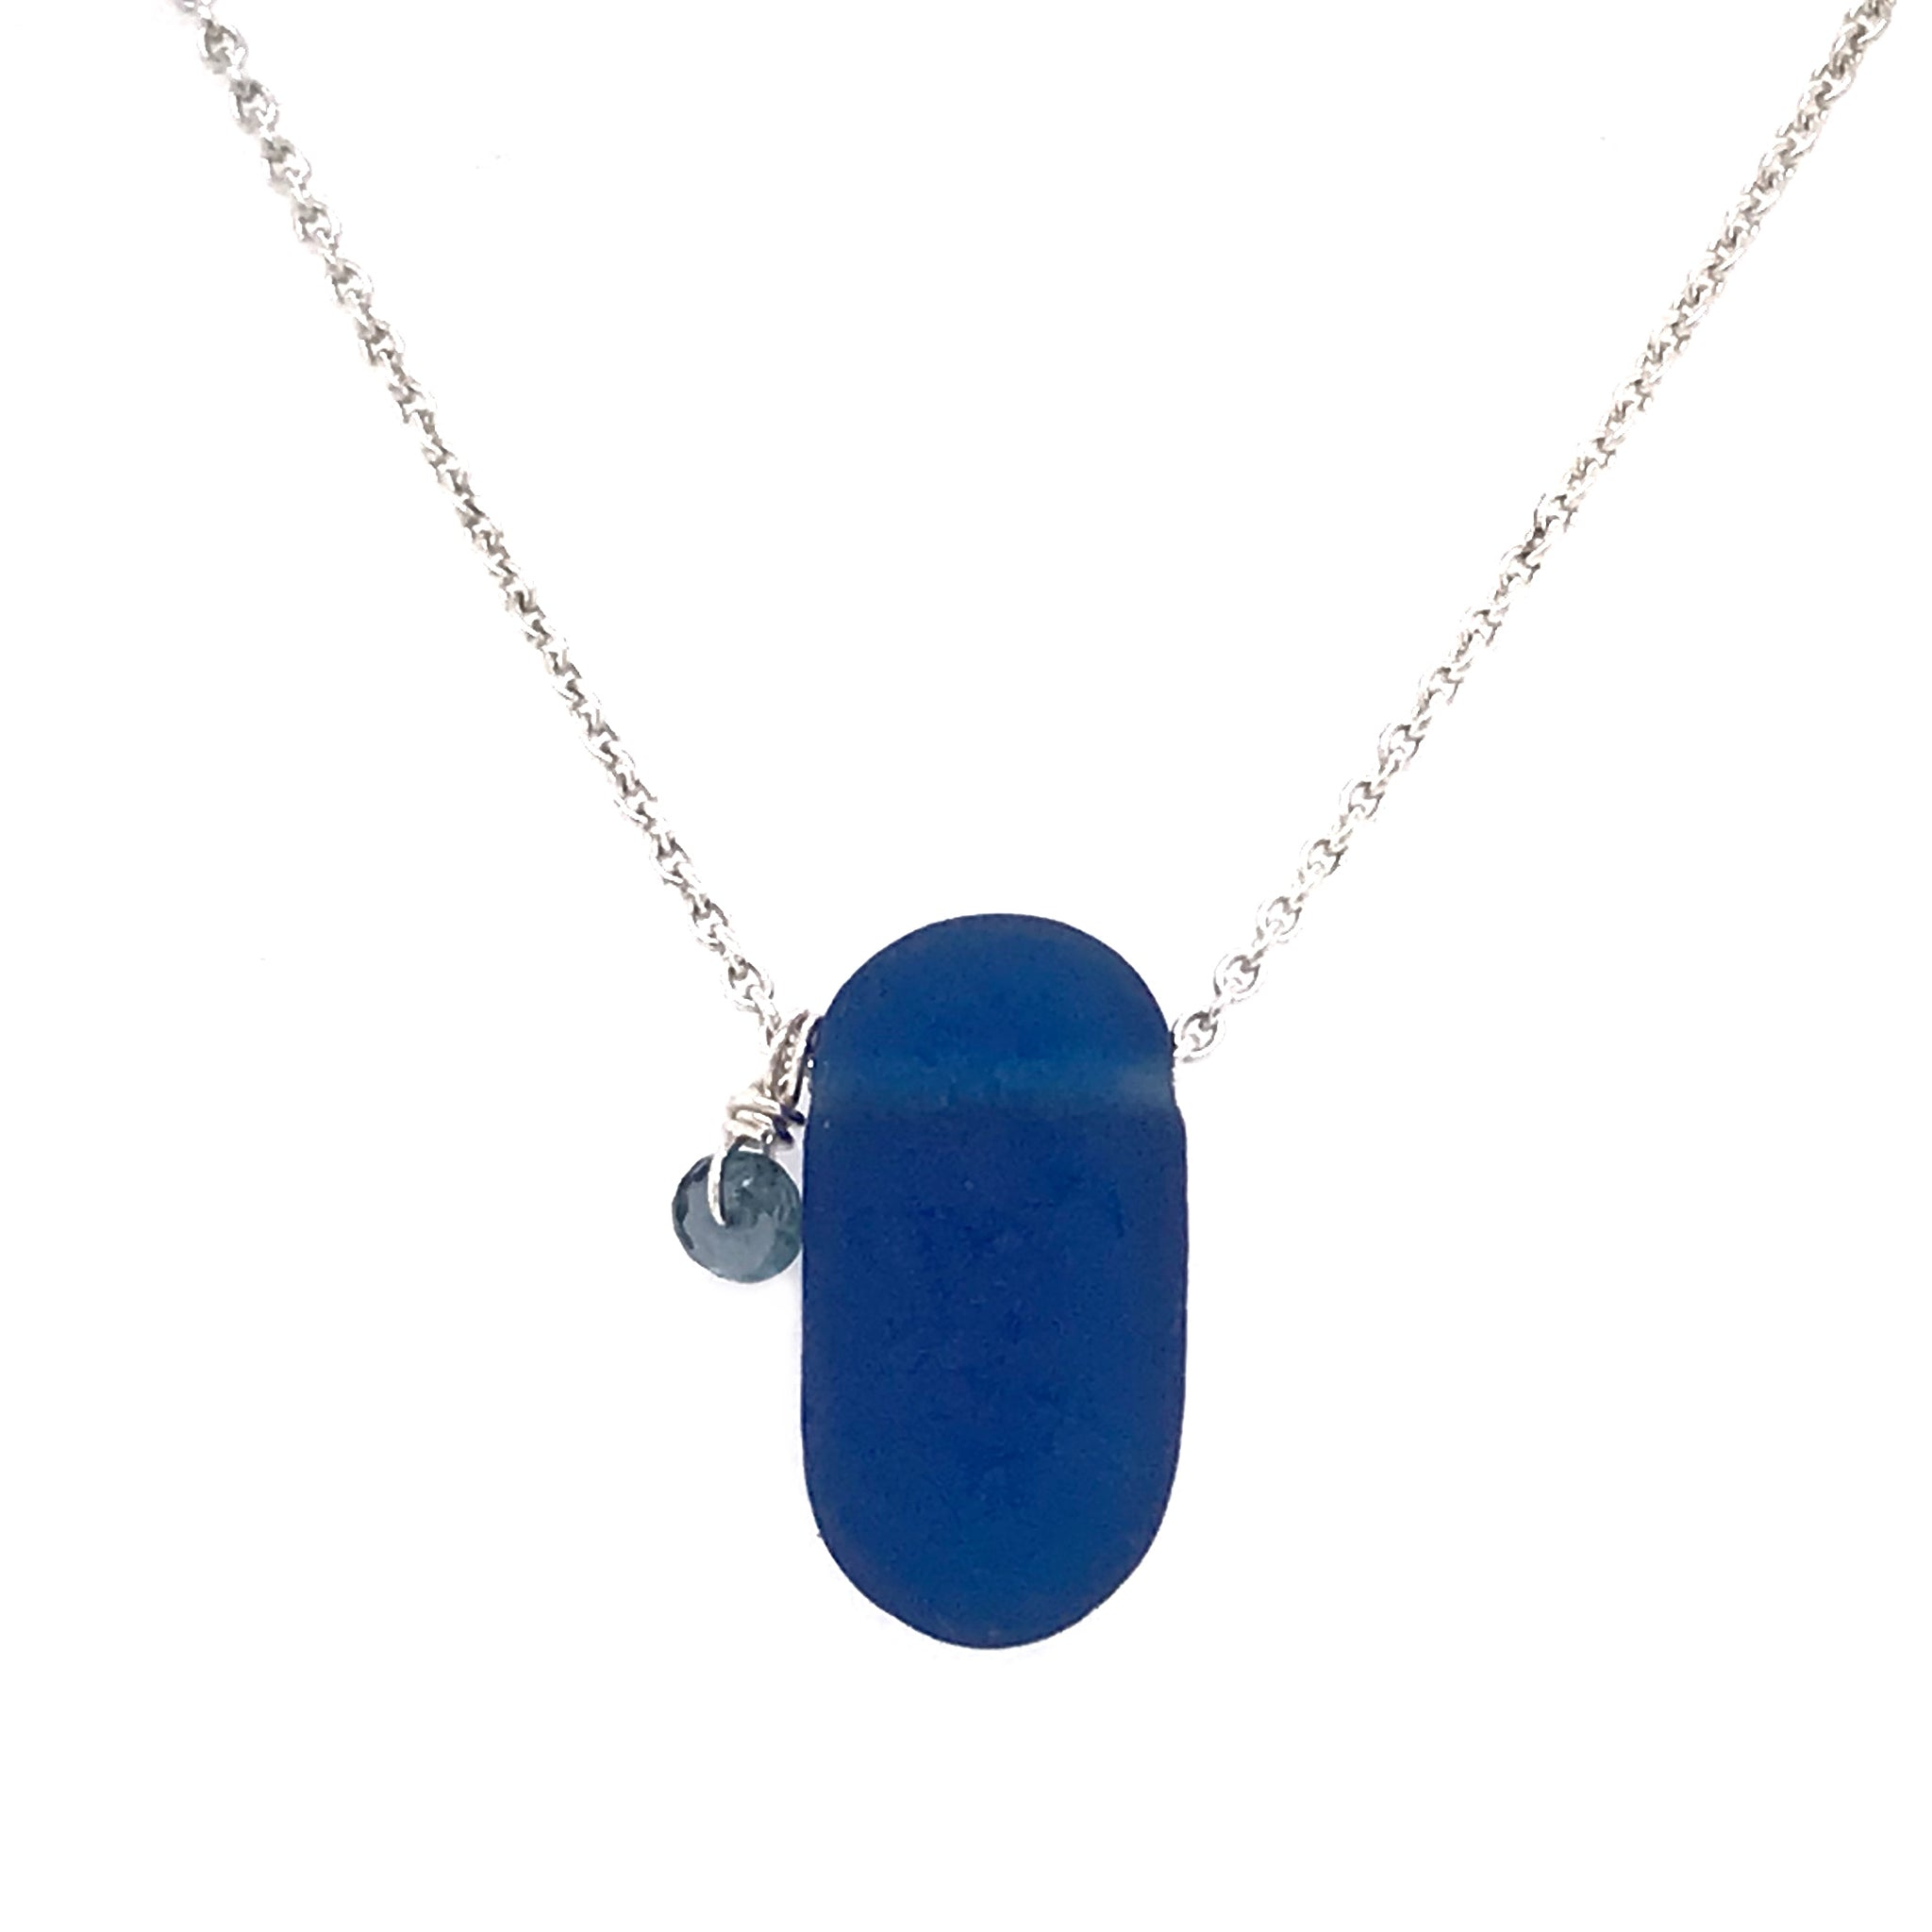 blue necklace sea glass and sapphires kriket broadhurst jewelry Australia